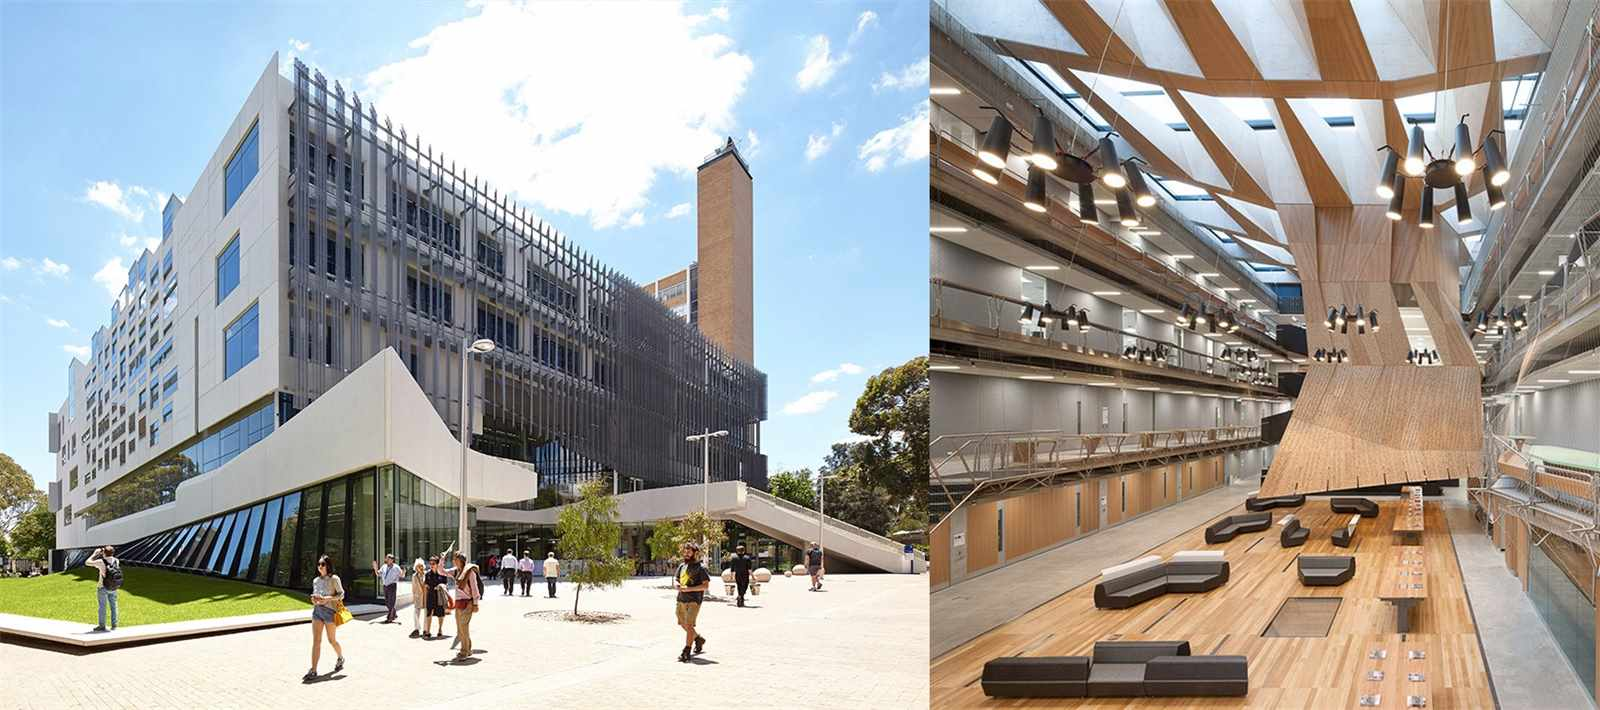 The University of Melbourne's new academic building, the Melbourne School of Design (MSD), …